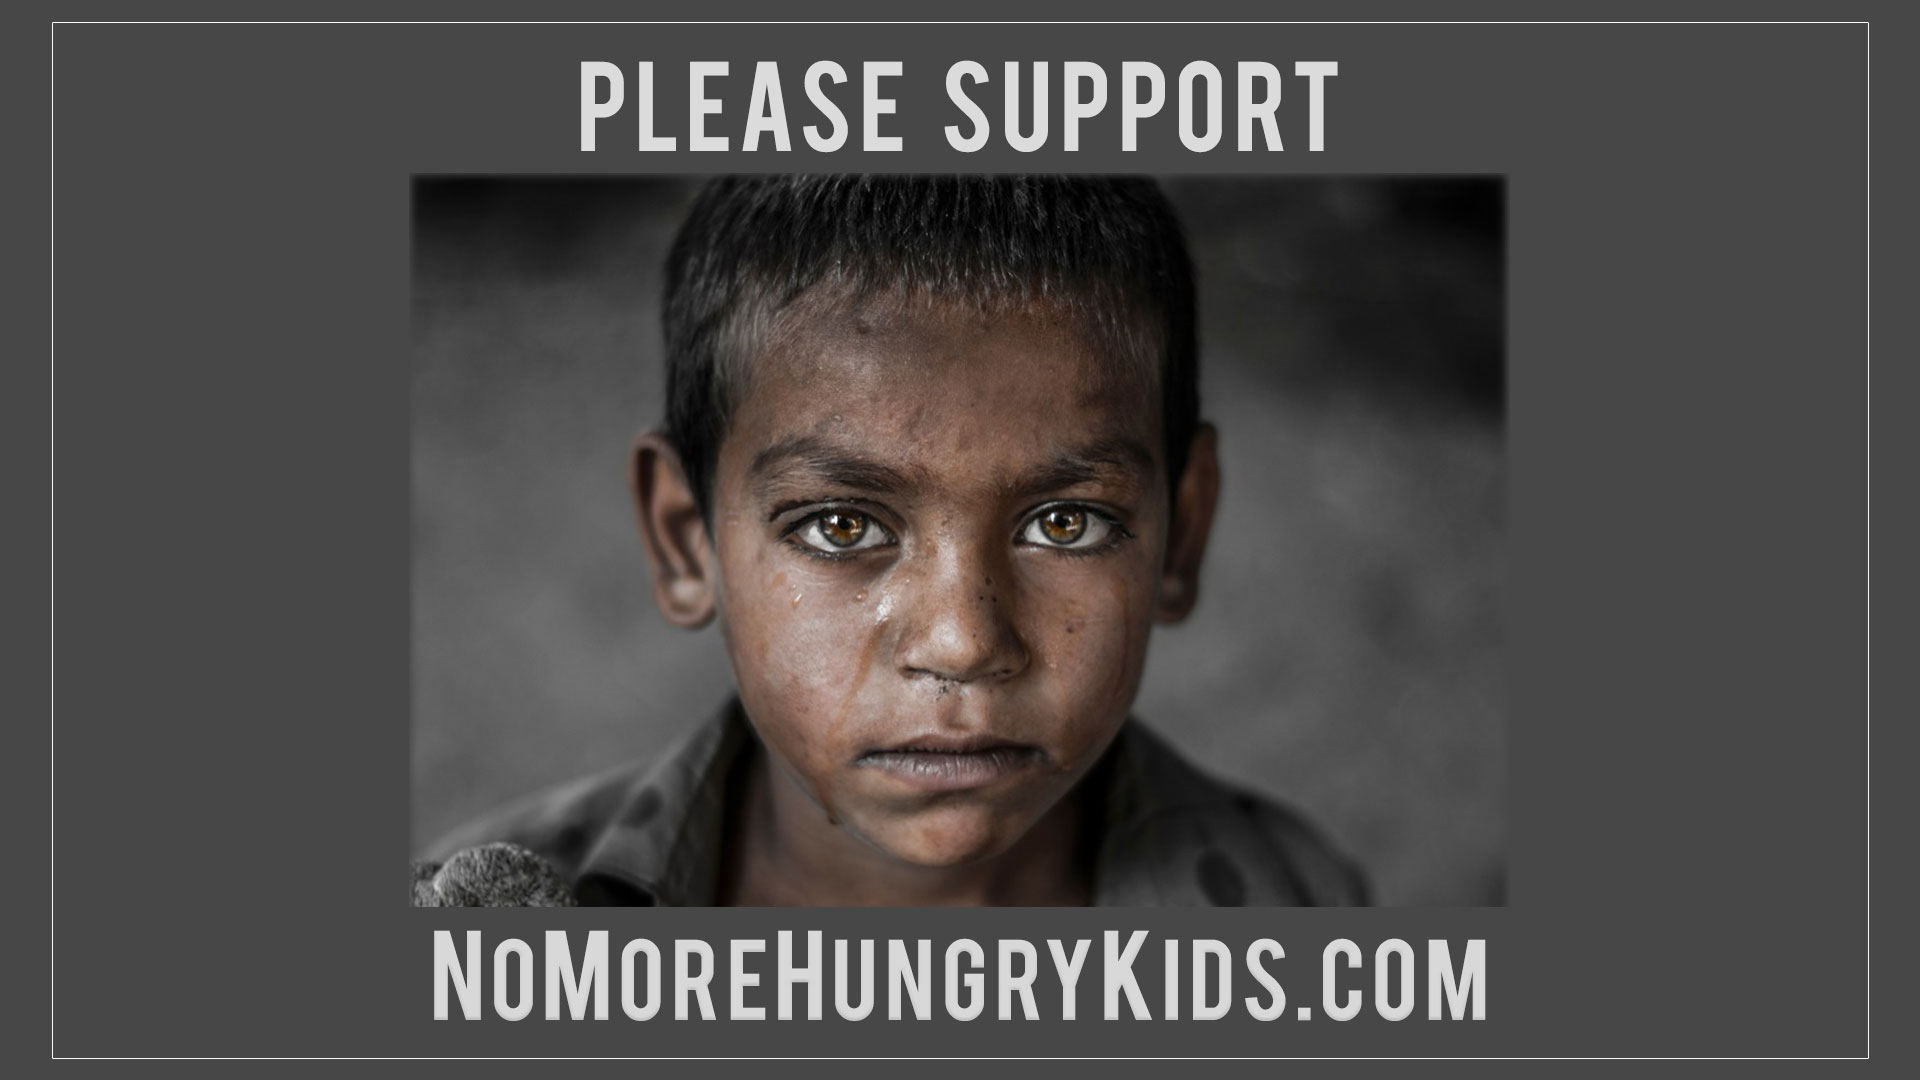 Please Support NoMoreHungryKids.com